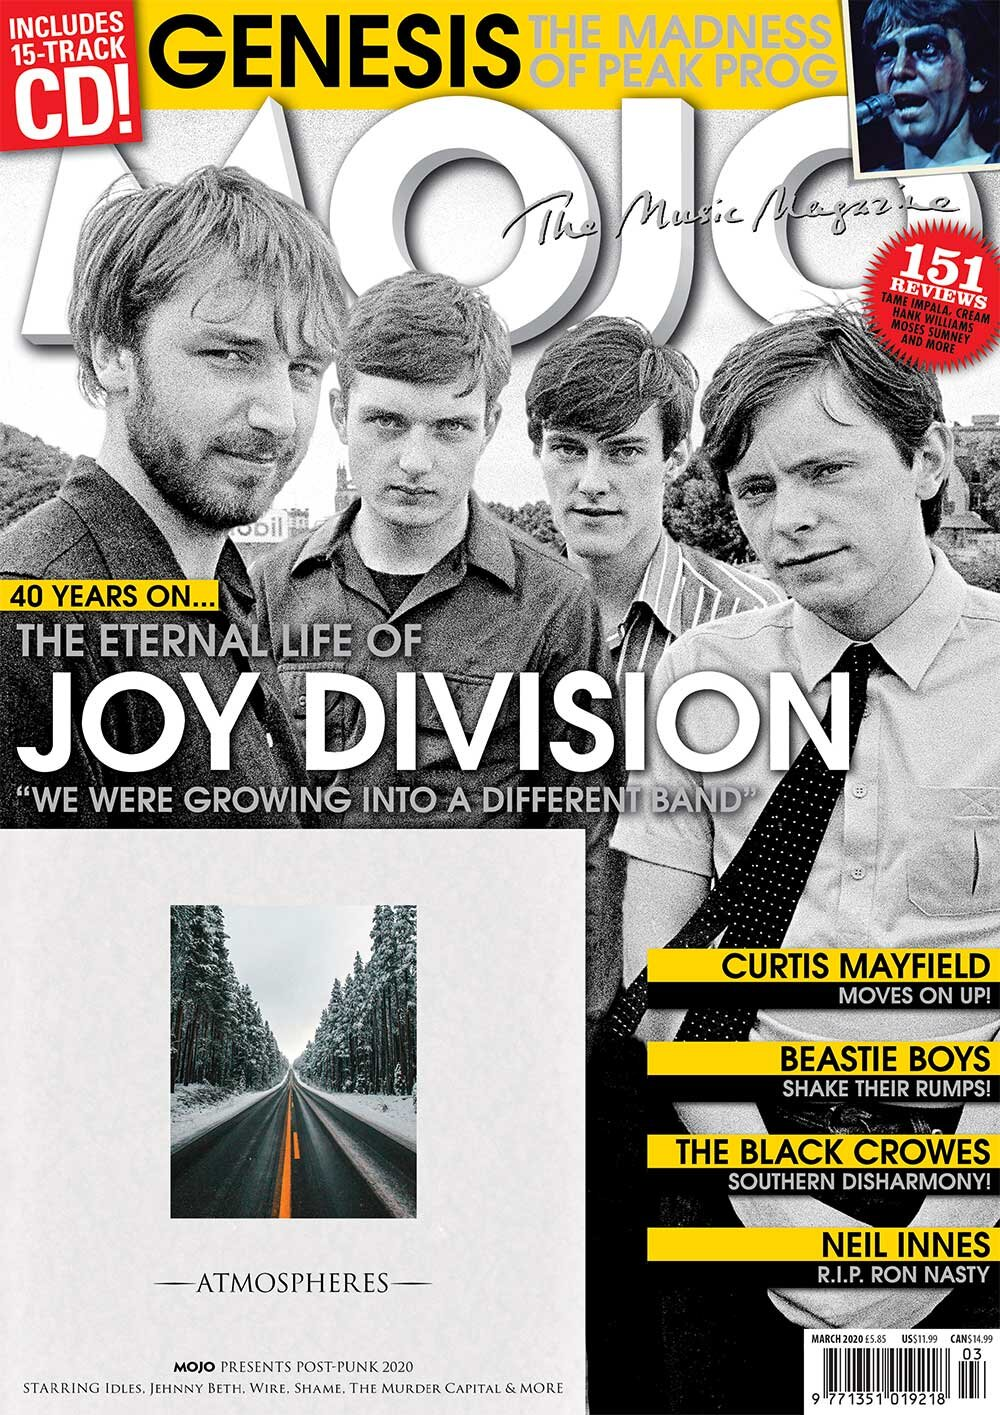 Mojo Magazine Issue 316 (March 2020) - Joy Division